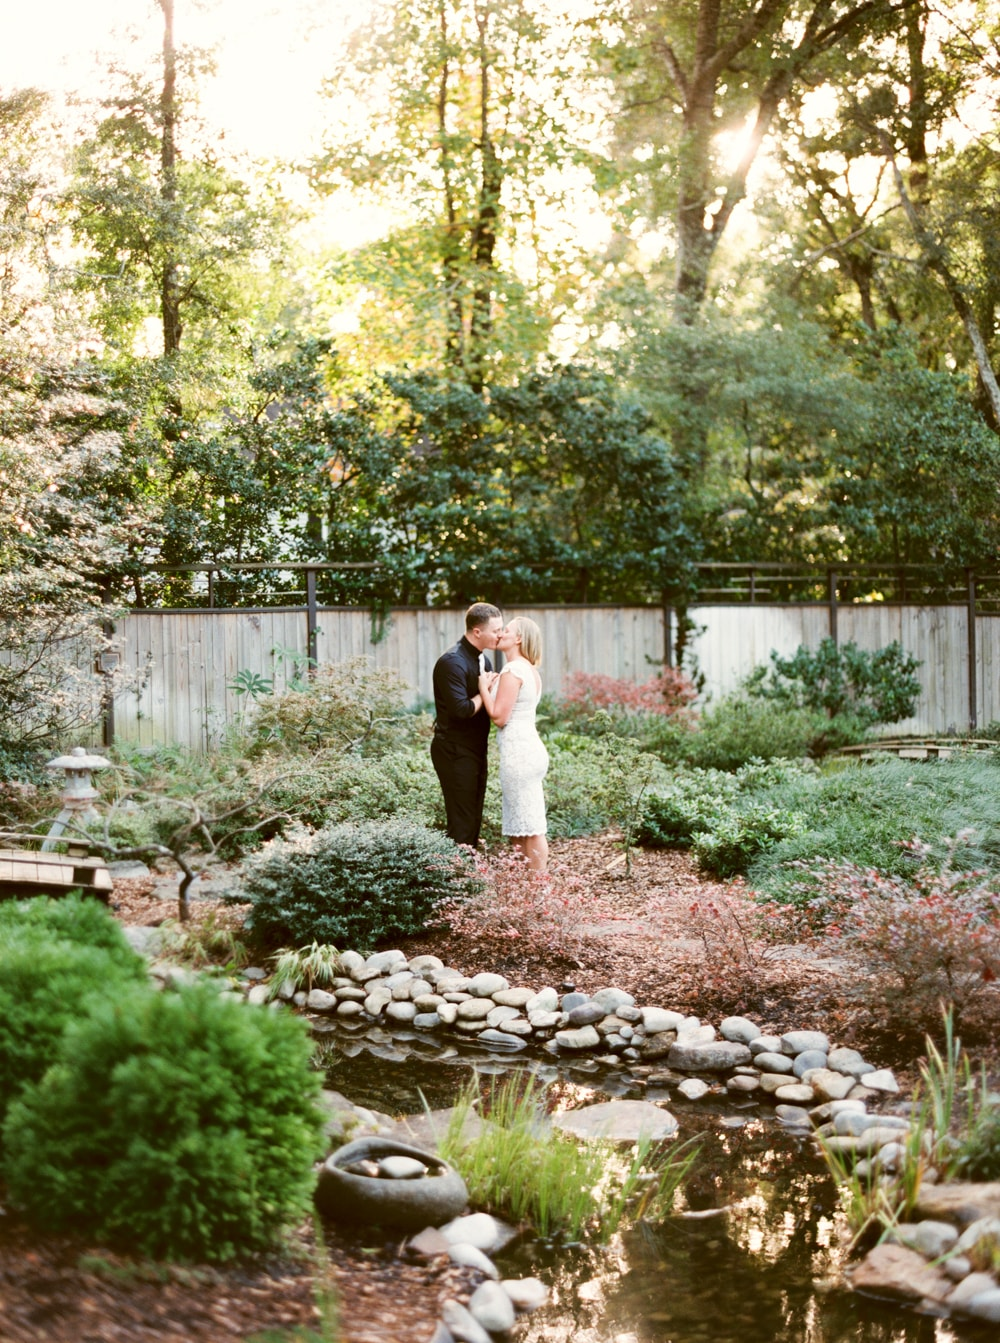 north-carolina-engagement-photography-61-min.jpg